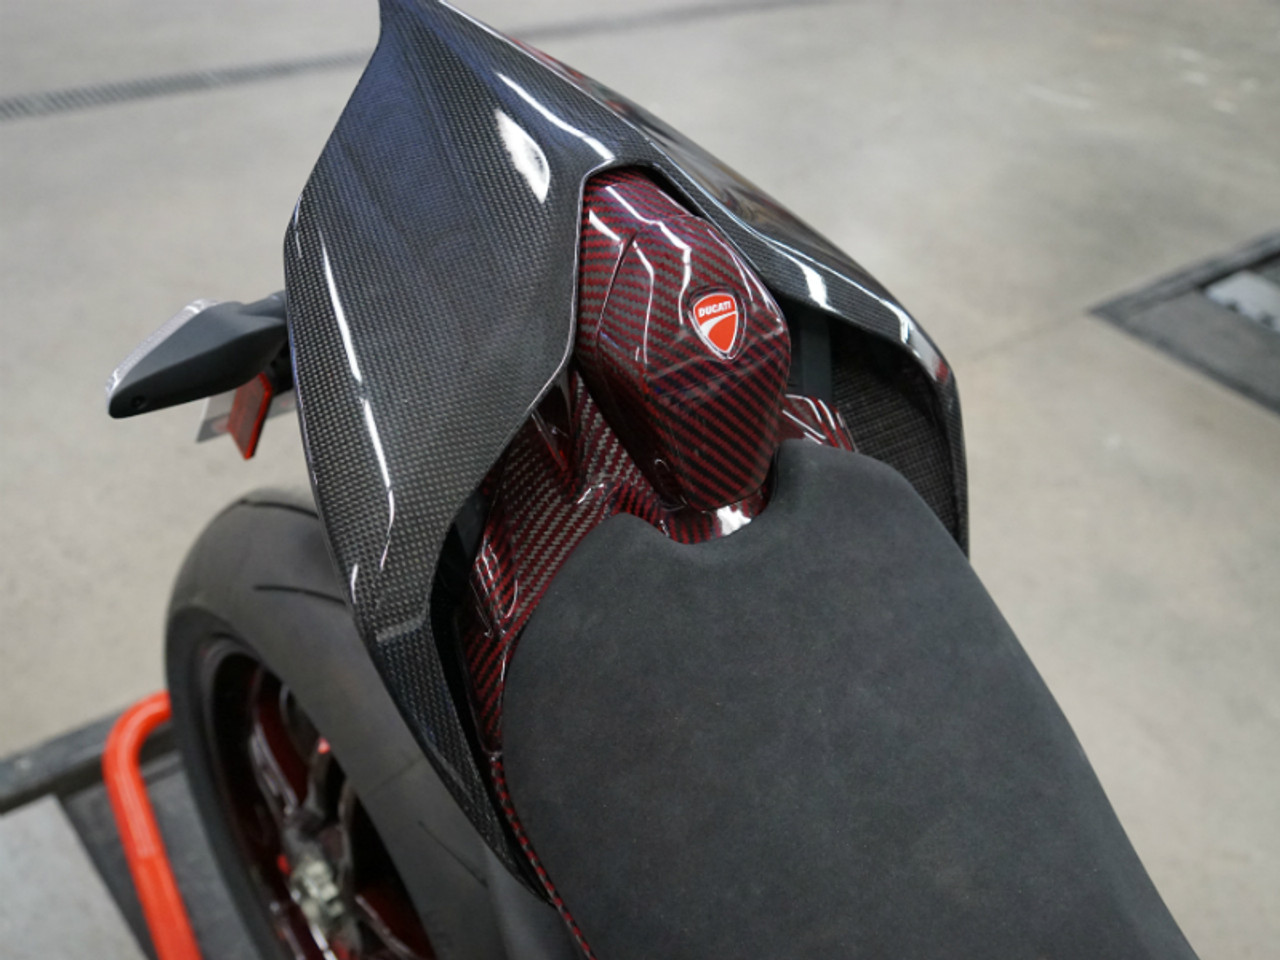 Tail Fairing Stay and Seat Back  in Black and Red Glossy Twill Weave Carbon Fiber for Ducati Panigale V4 installed